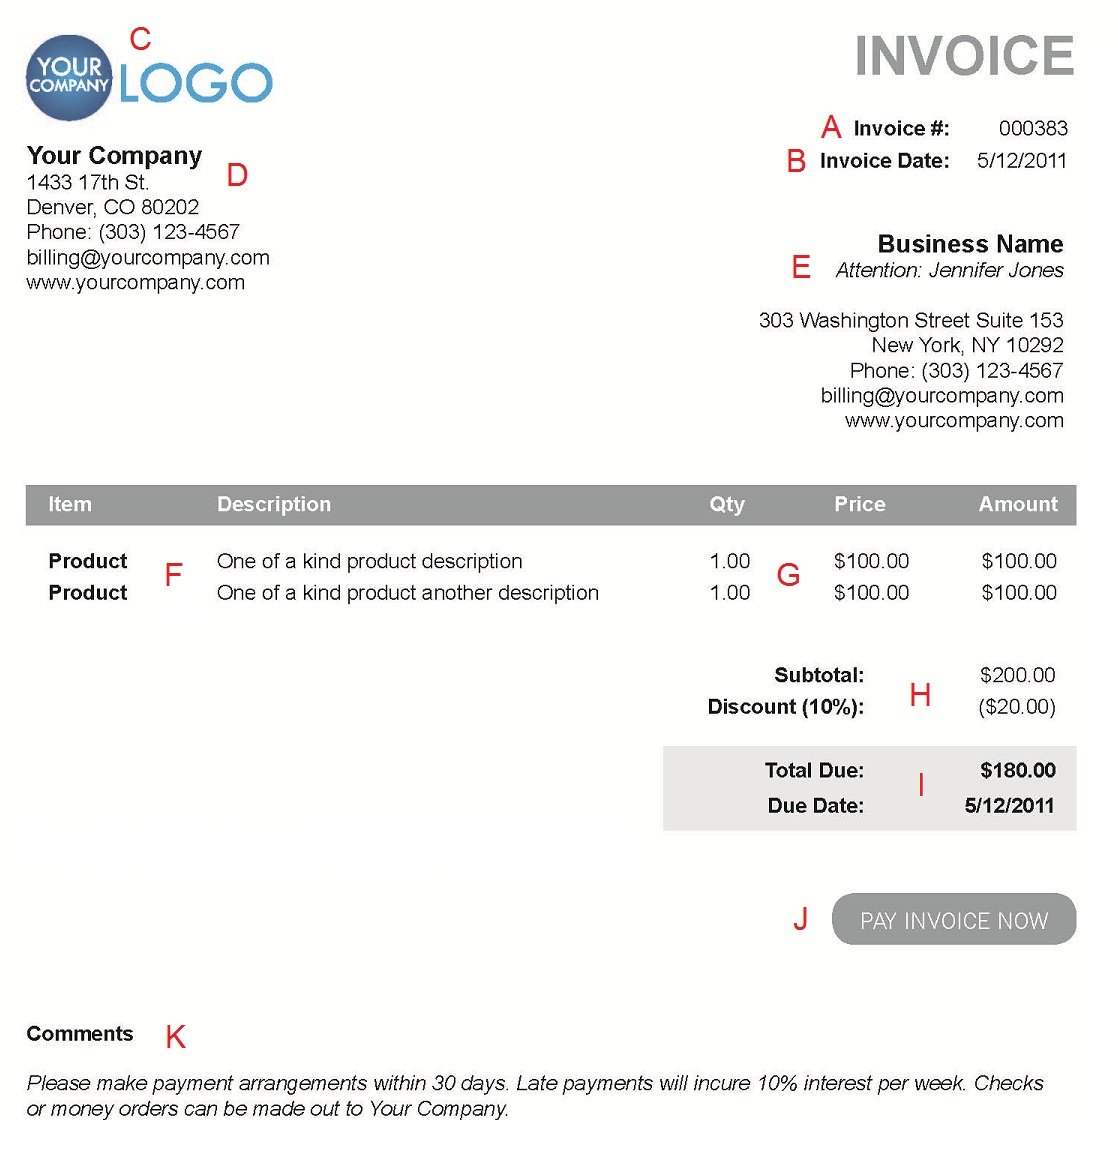 Opposenewapstandardsus  Ravishing The  Different Sections Of An Electronic Payment Invoice With Likable A  With Archaic Contract Invoice Also Daycare Invoice Template In Addition Invoice Proforma And Virtually There Einvoice As Well As Honda Accord Invoice Additionally Simple Invoice Template Free From Paysimplecom With Opposenewapstandardsus  Likable The  Different Sections Of An Electronic Payment Invoice With Archaic A  And Ravishing Contract Invoice Also Daycare Invoice Template In Addition Invoice Proforma From Paysimplecom